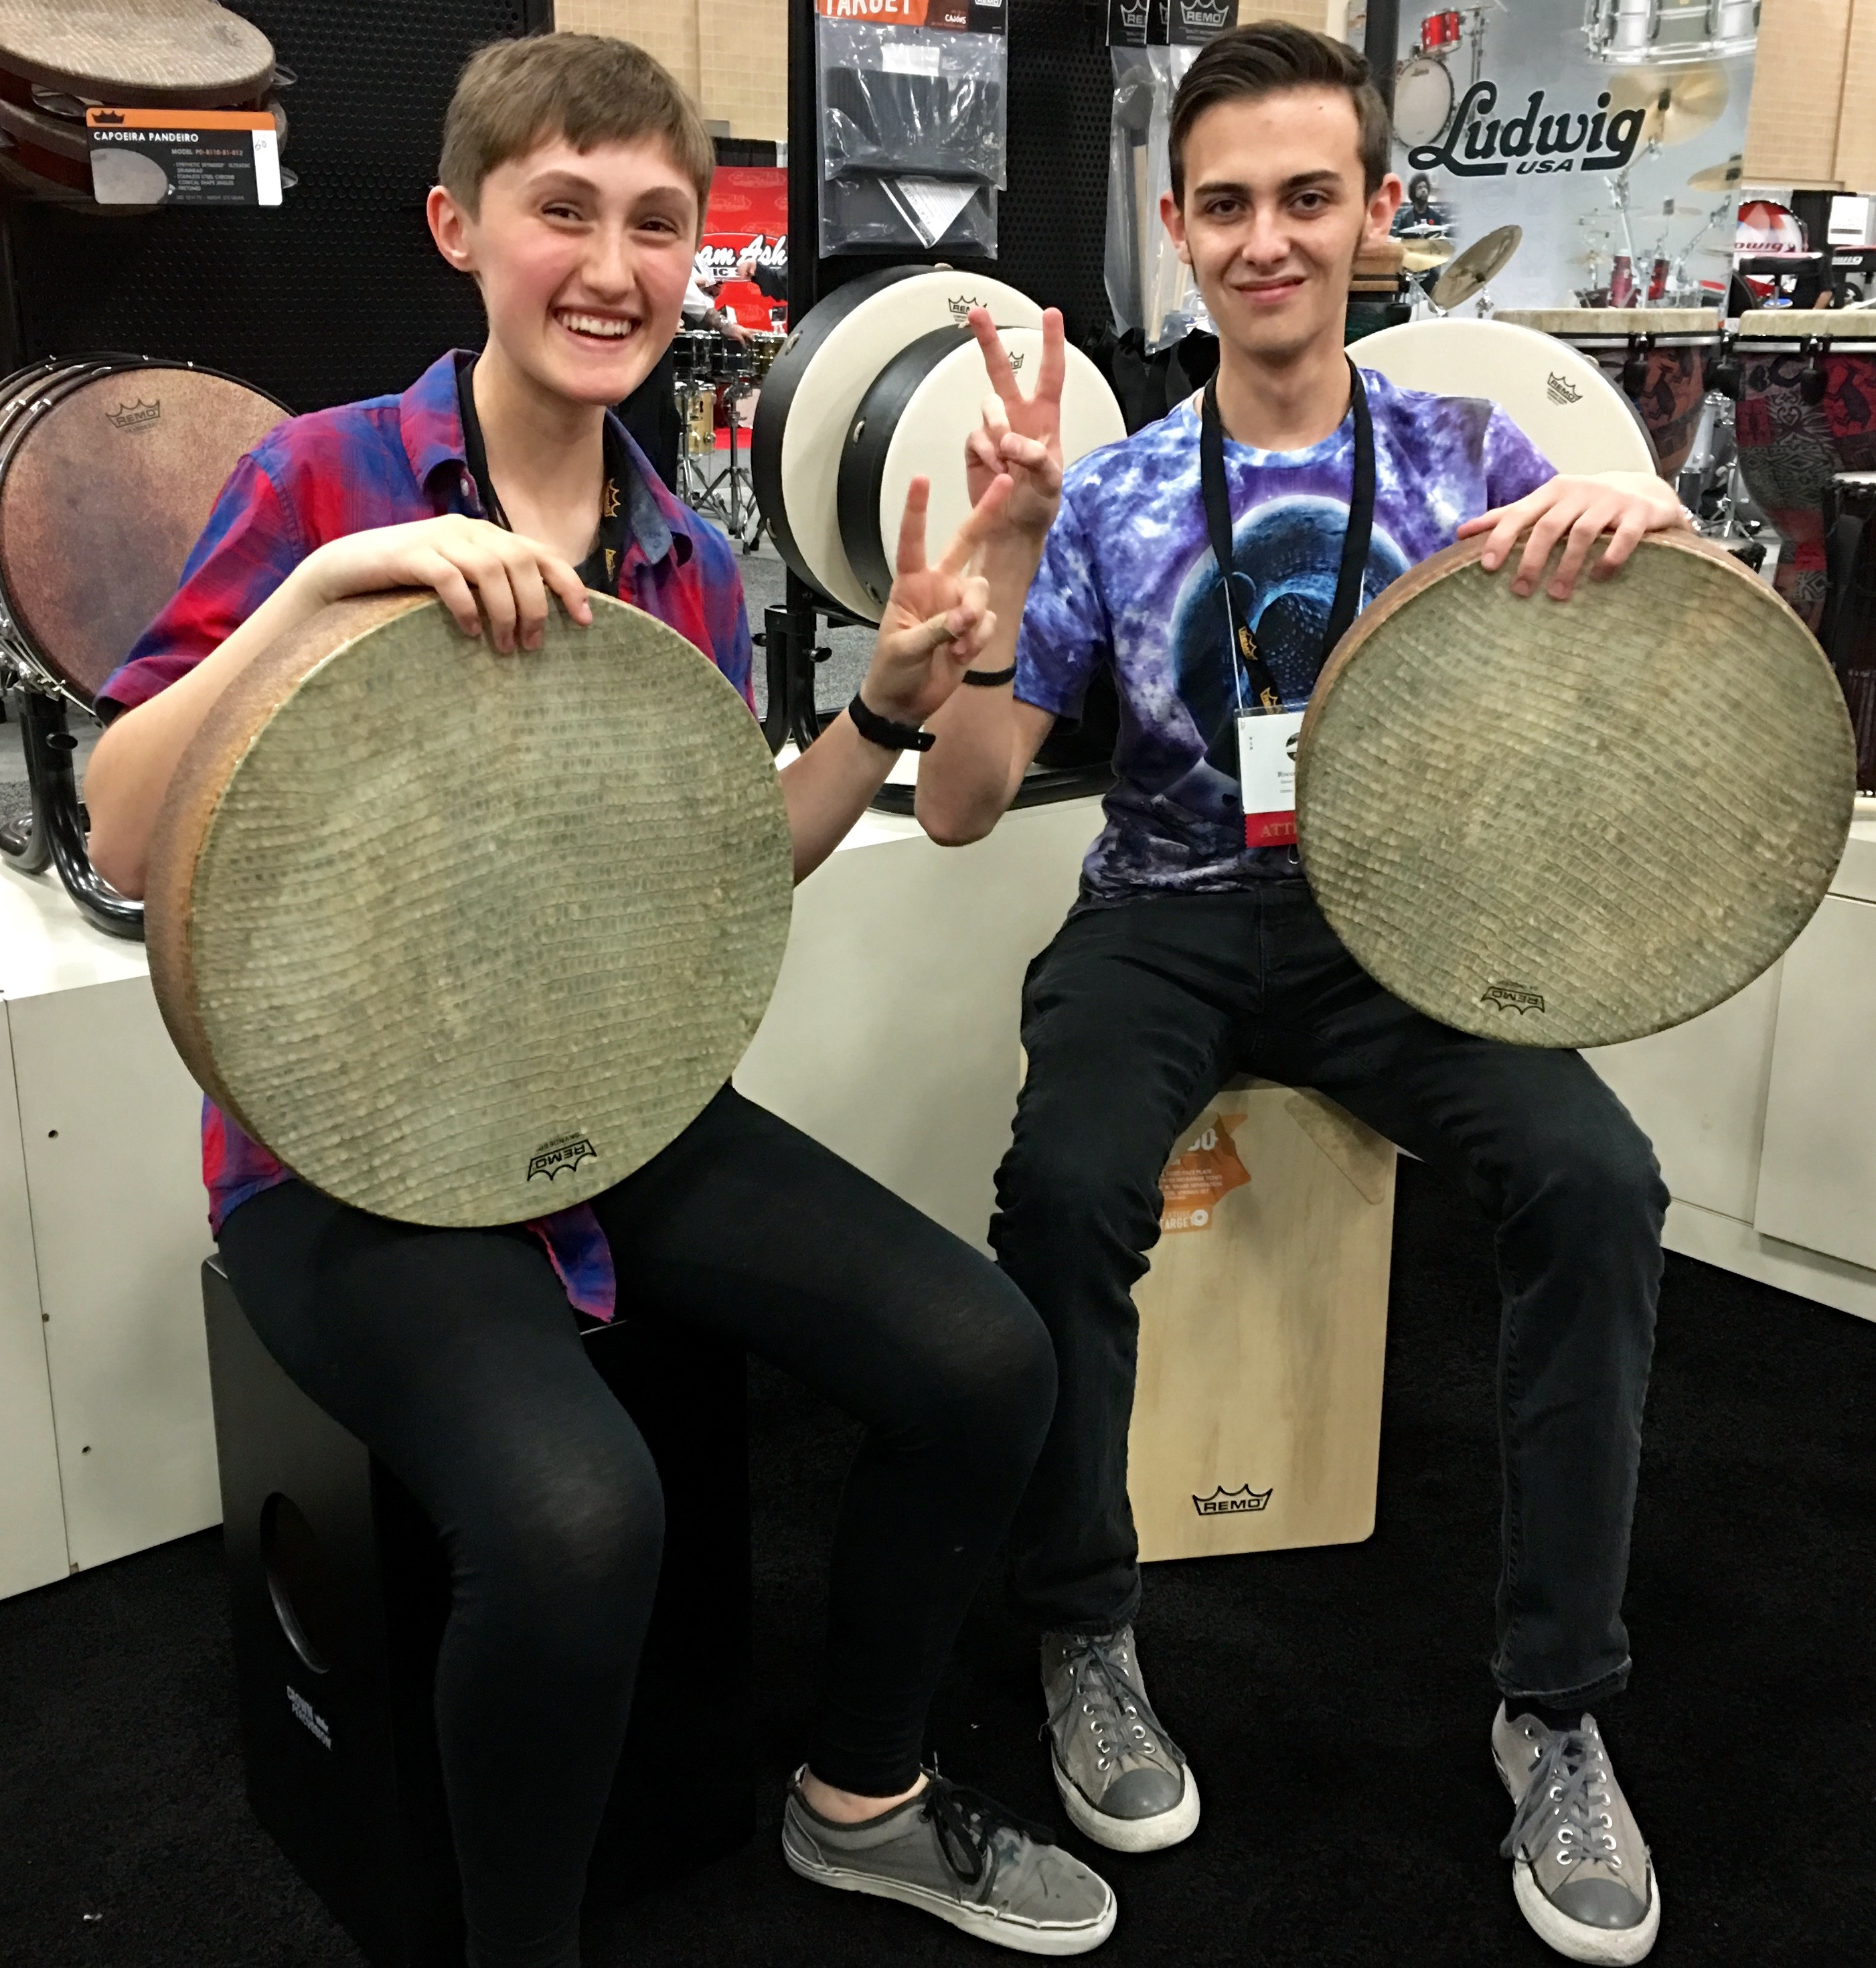 On a recent trip to the Percussive Arts Society convention in San Antonio, TX Gabby Costache and Rocco Williams share a moment testing hand drums.